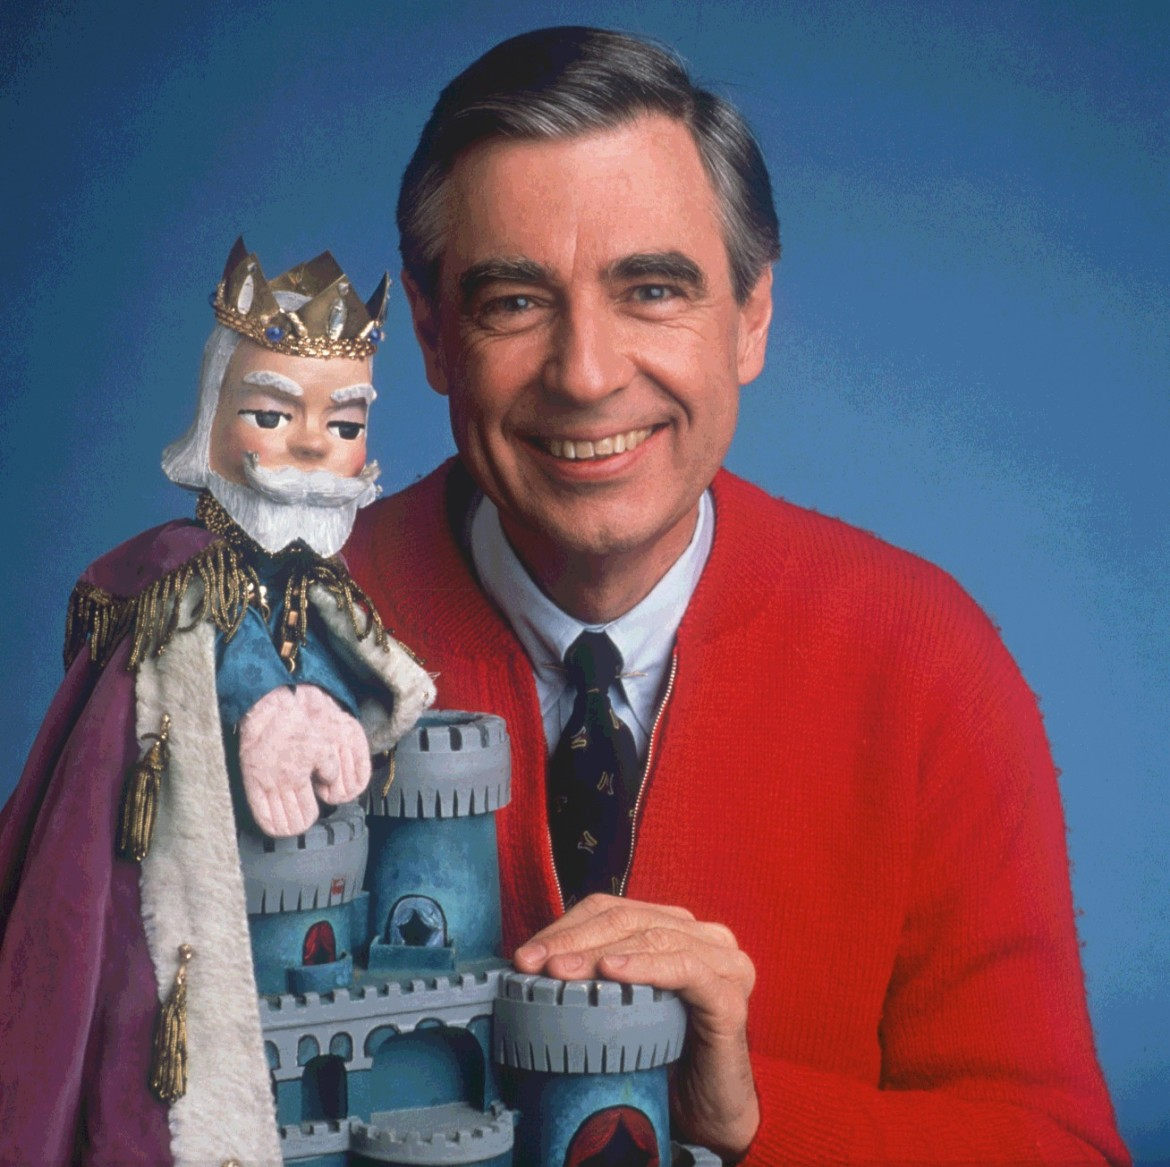 The Pub Episode 6 Wwfd What Would Fred Rogers Do Pbs Documentaries In Danger David Carr On Public Media Current